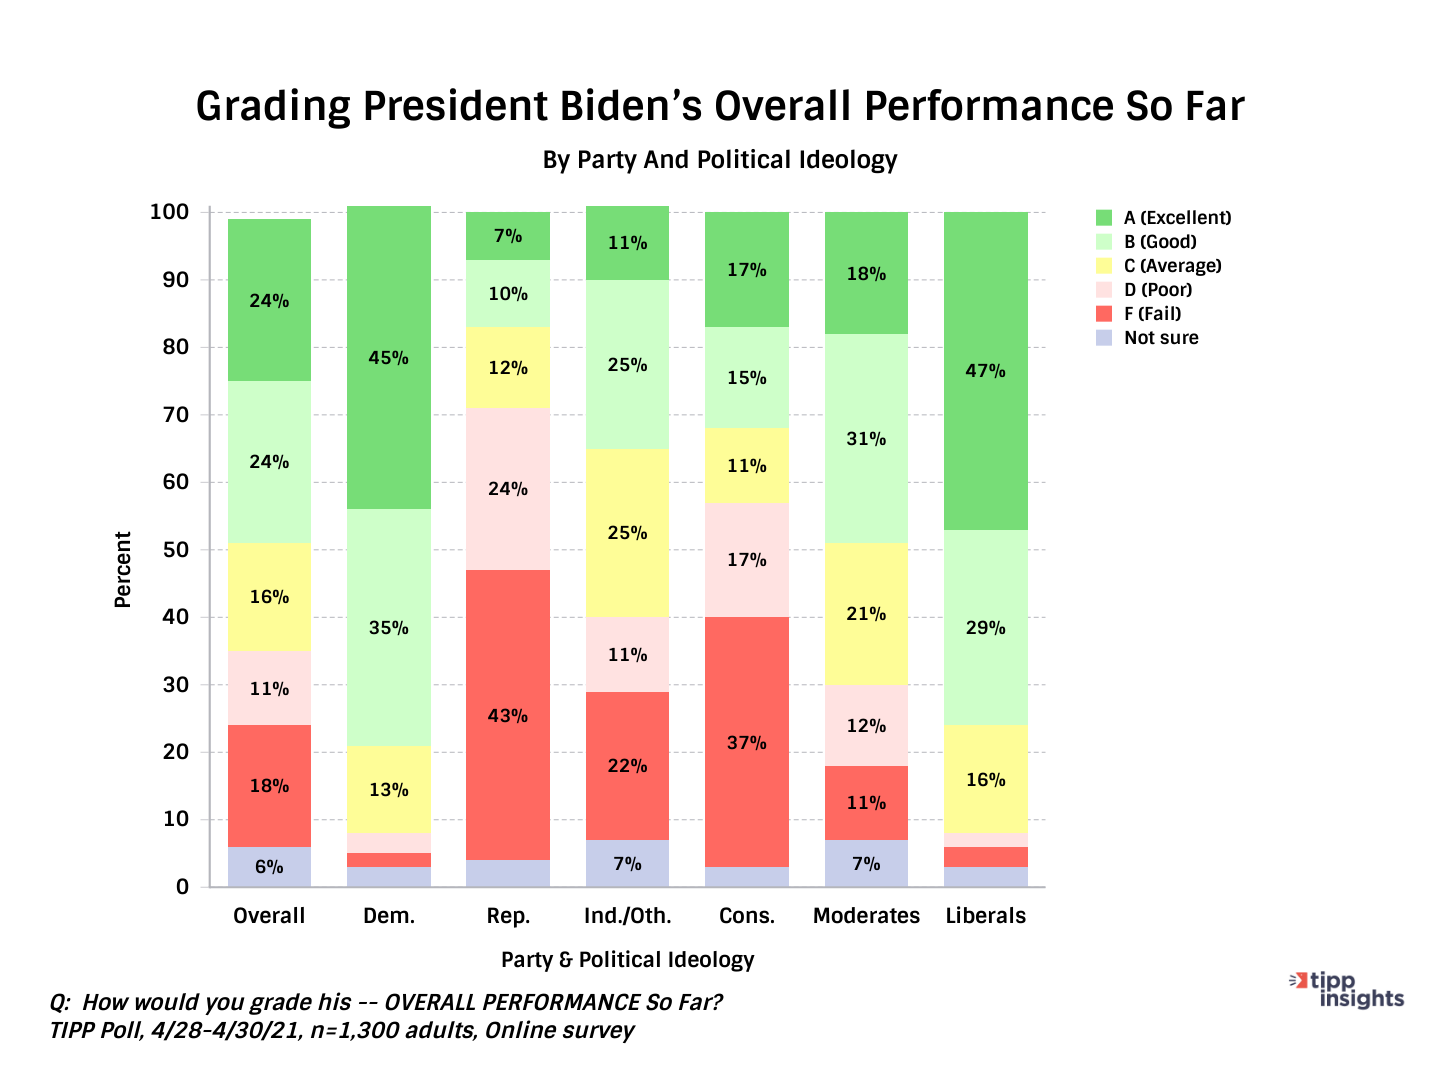 TIPP Poll Results for TIPP Presidential Leadership Index, Grading Biden along party and ideological lines